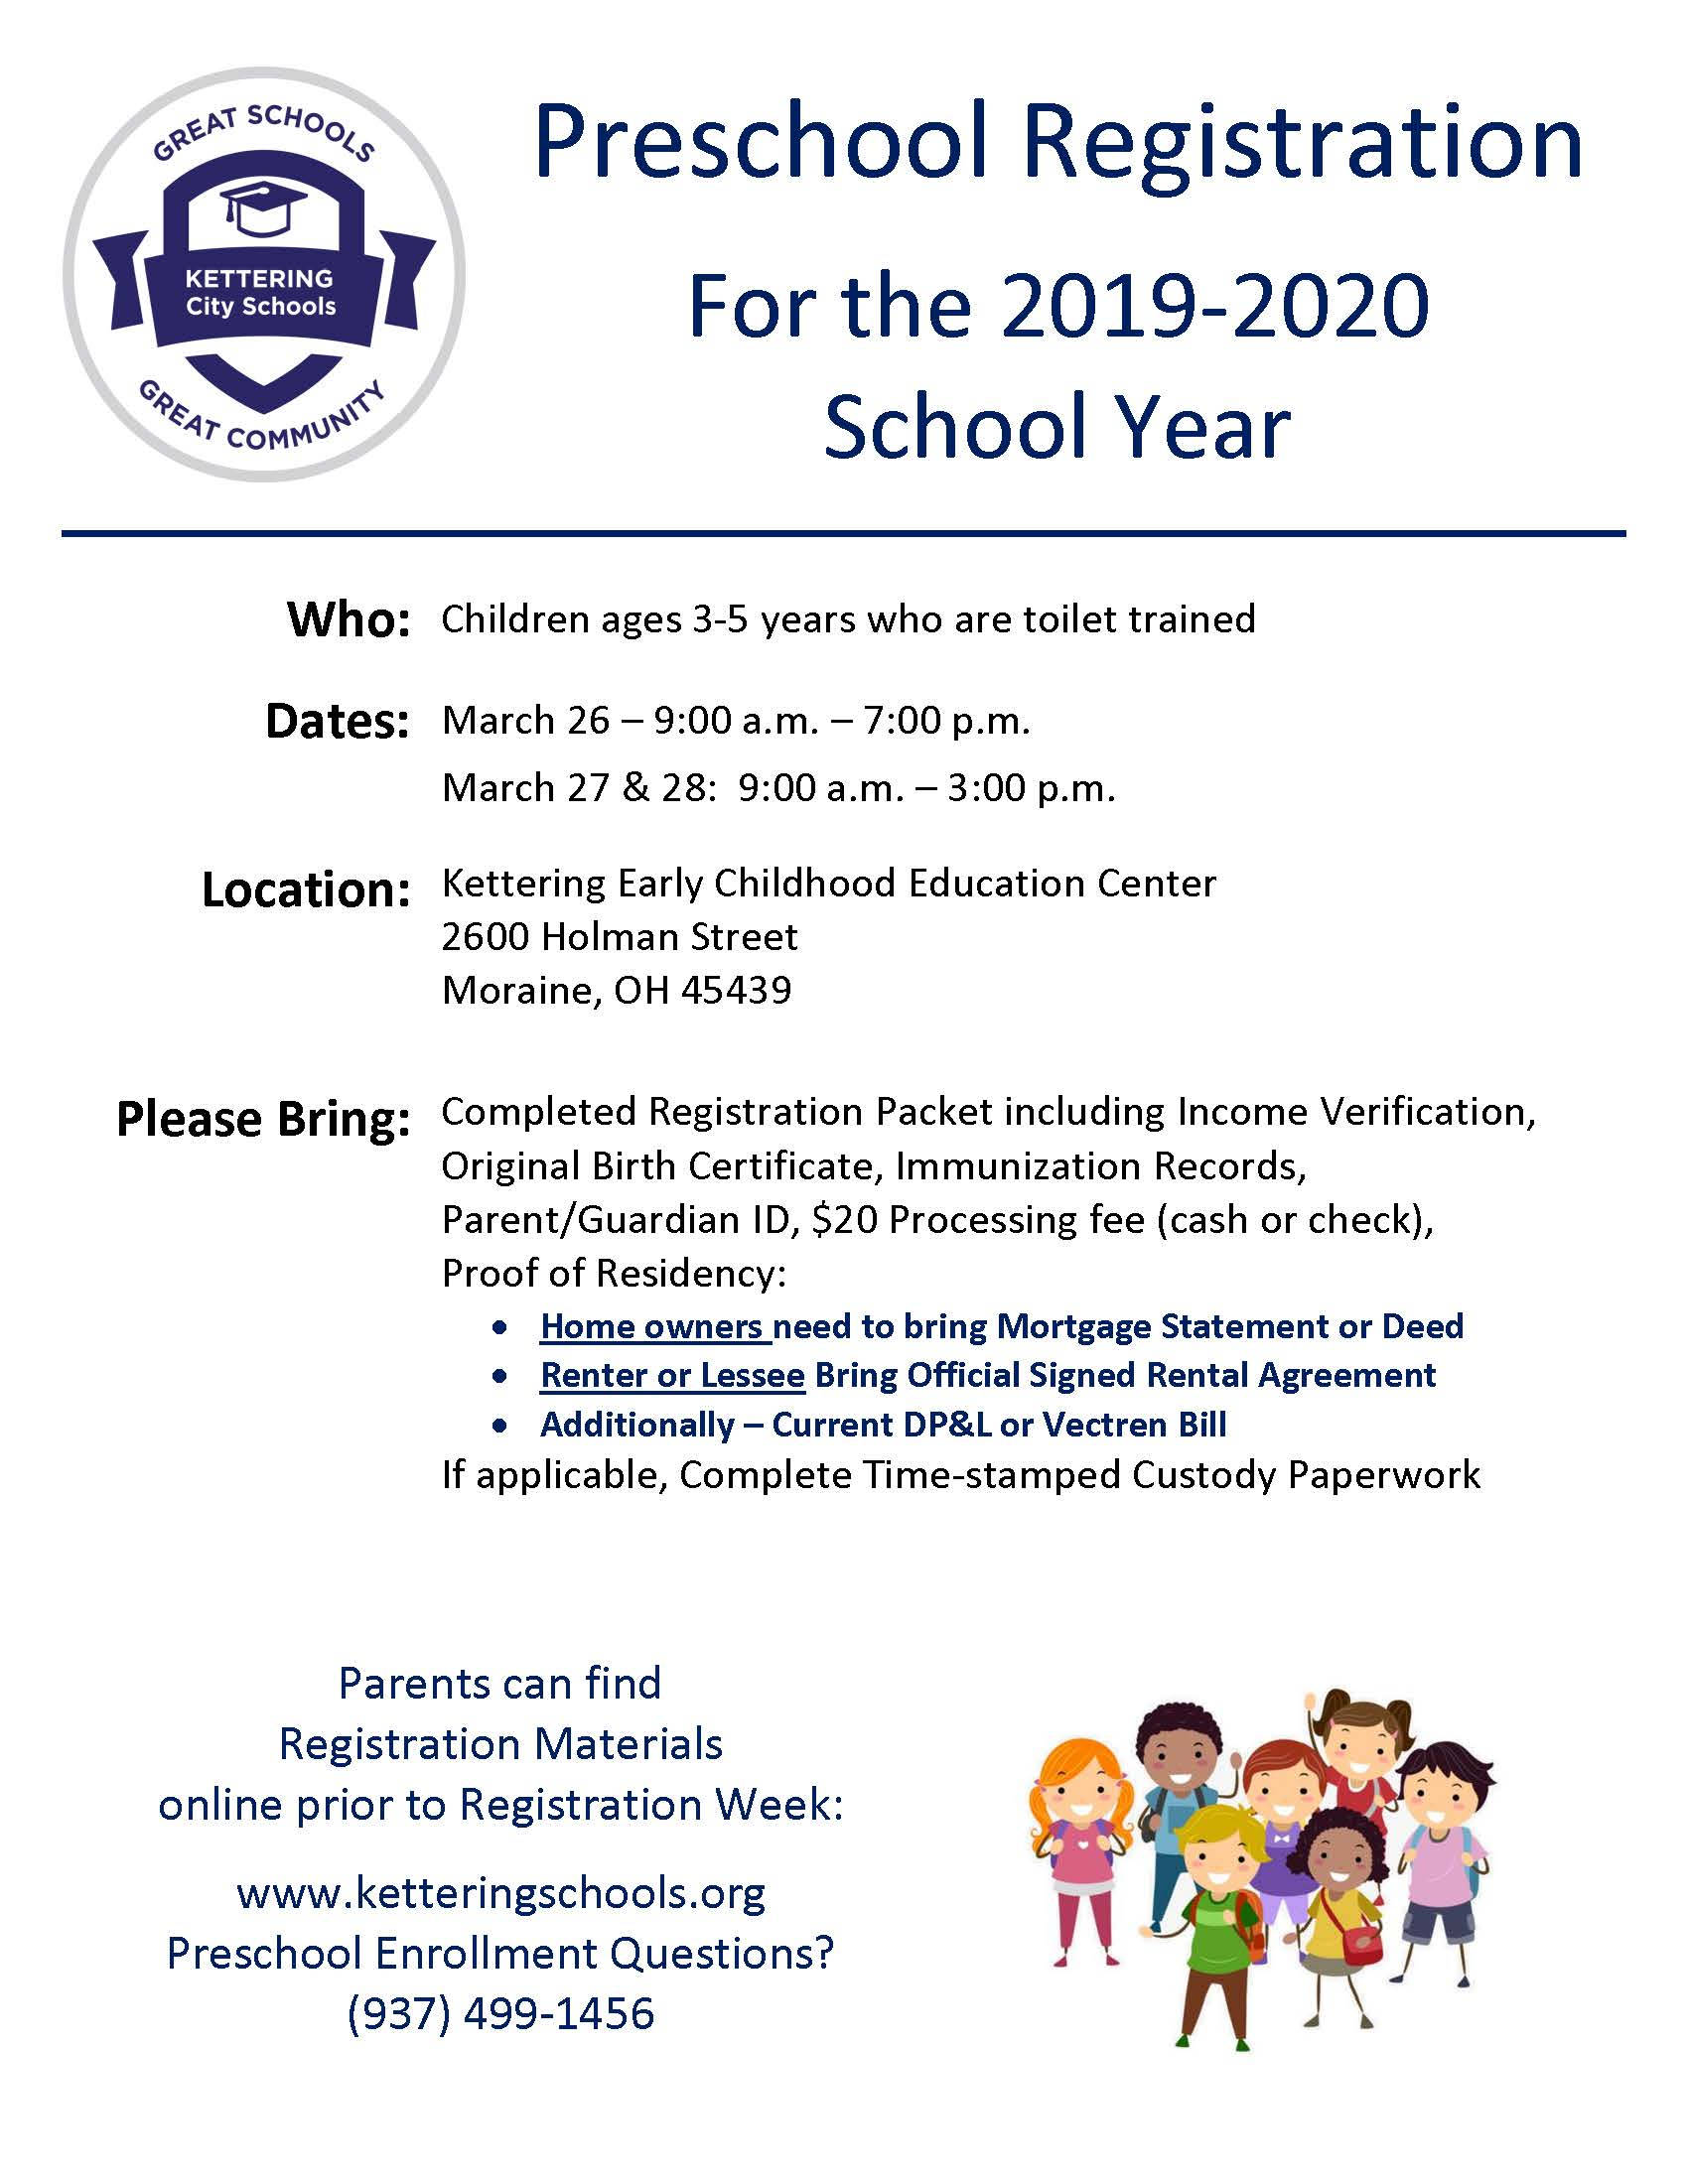 Preschool Registration set for March 26 and 27